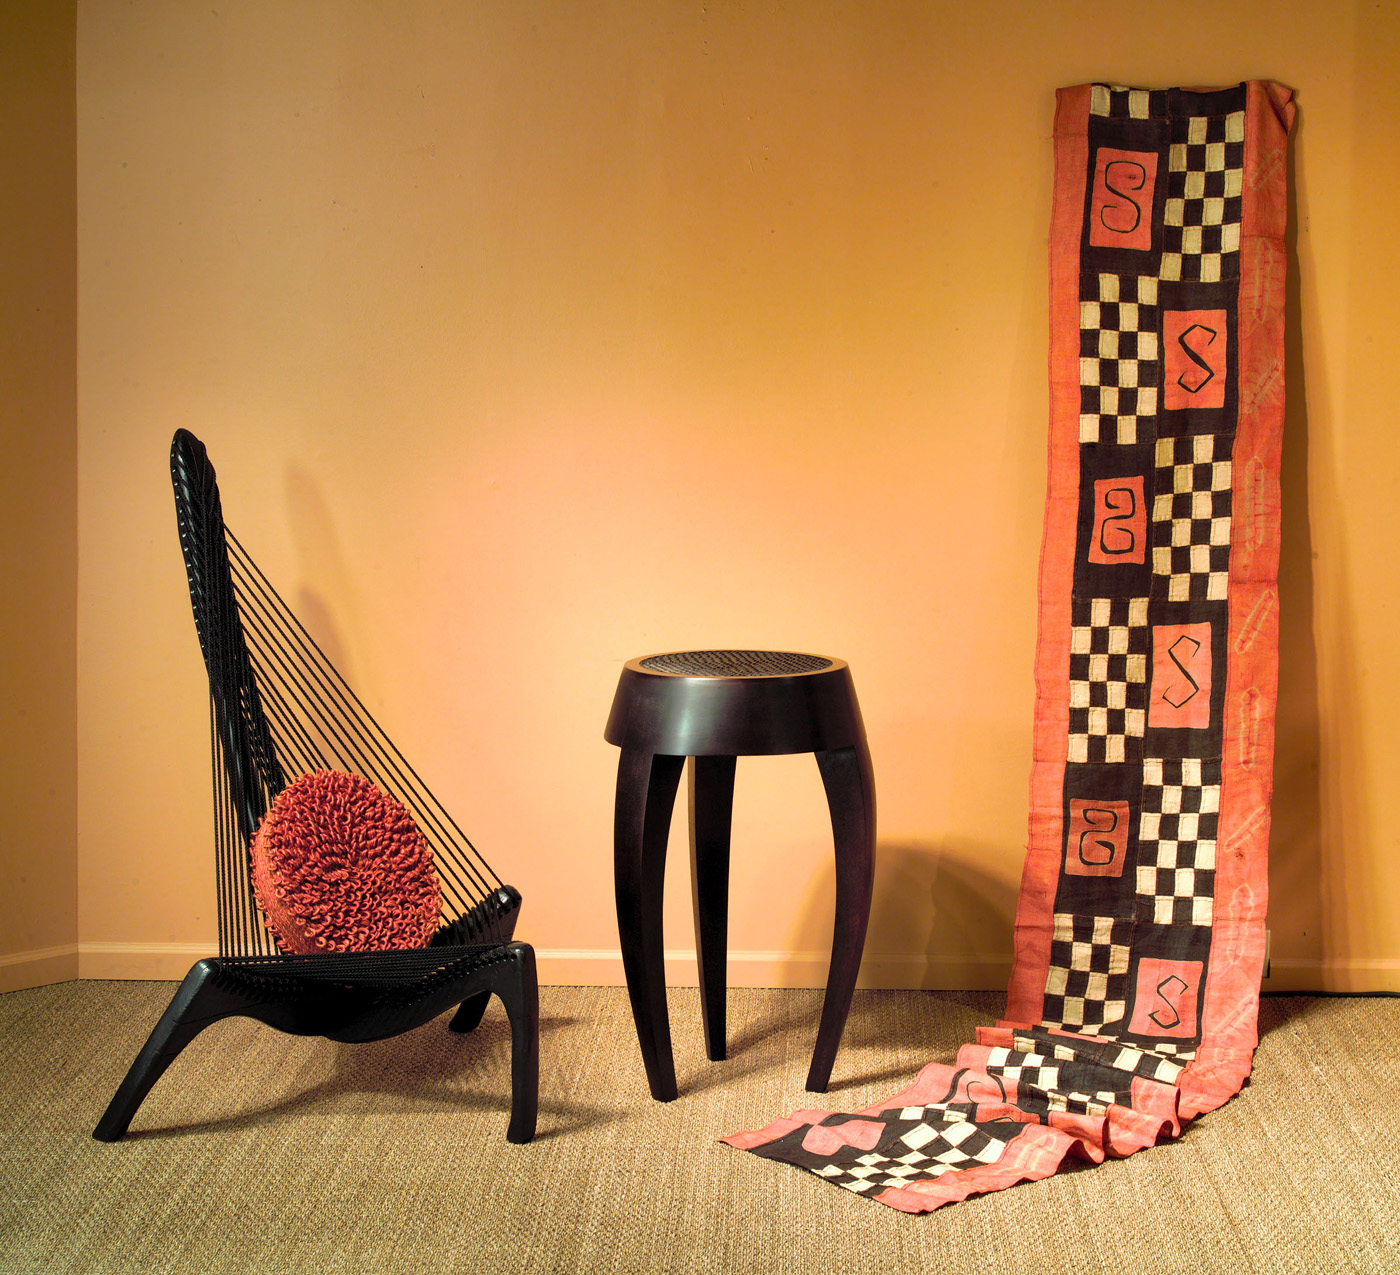 Travel And Trade South Africa: African Furniture